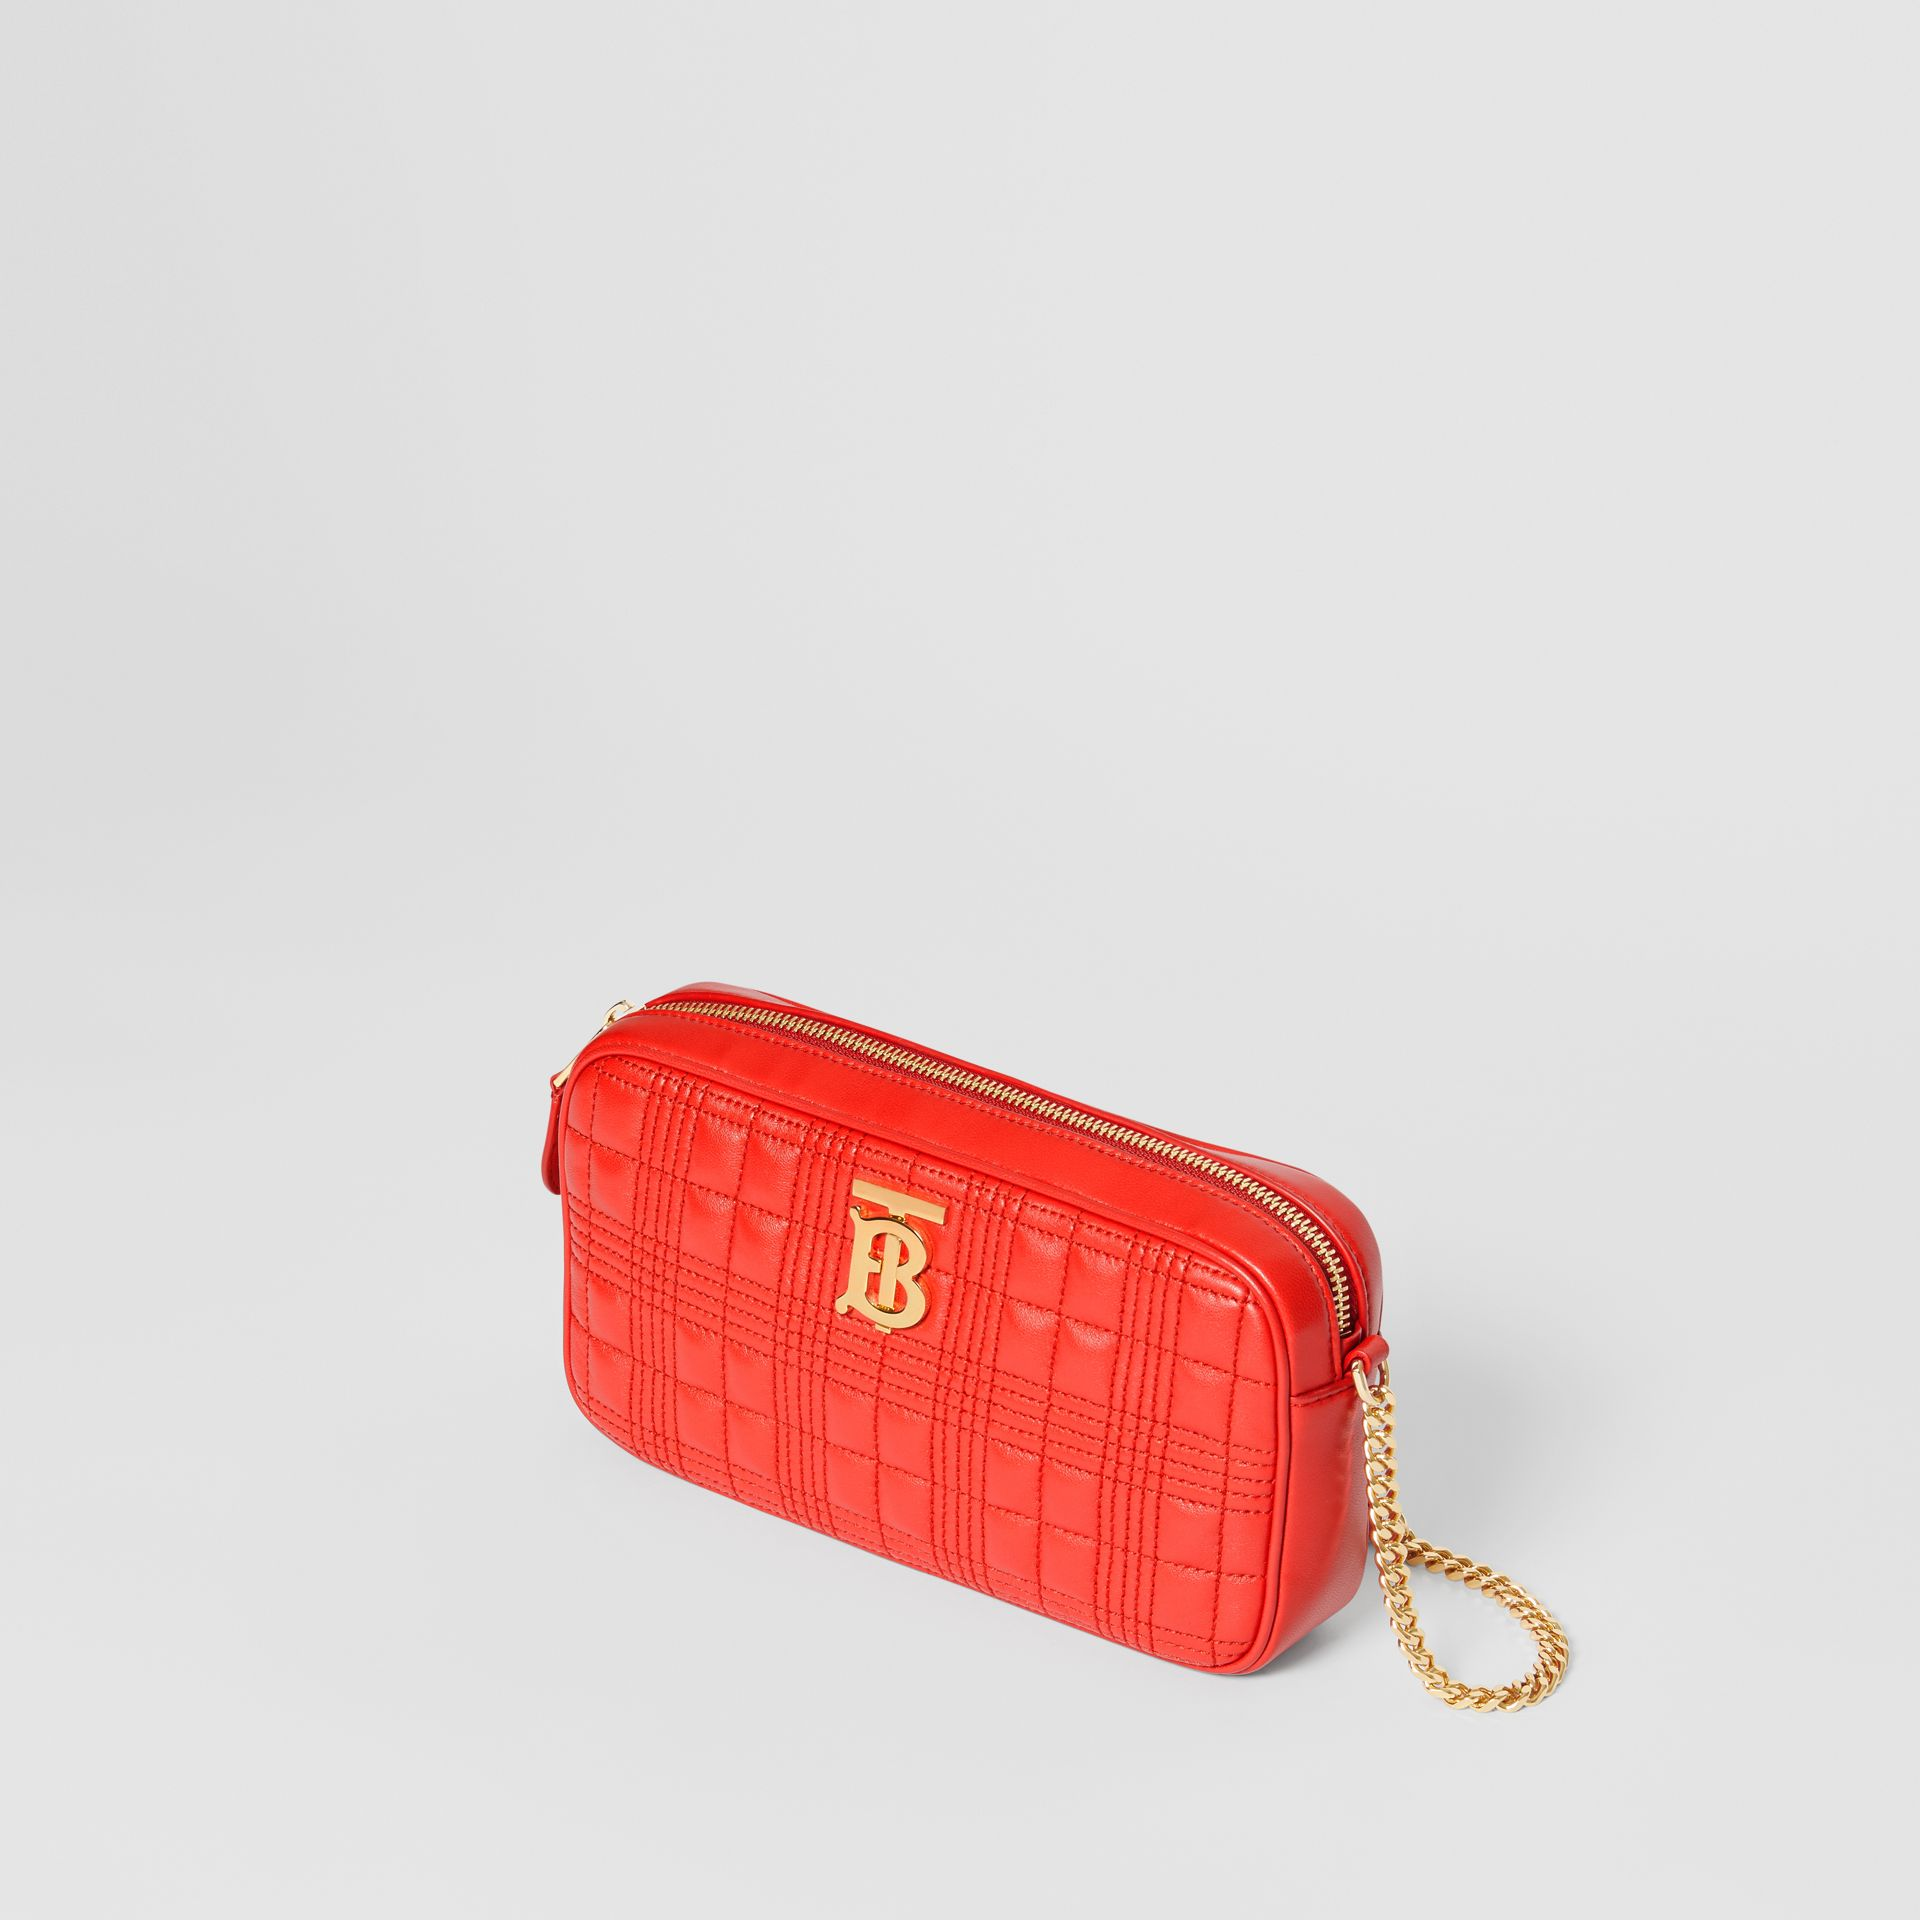 Quilted Lambskin Camera Bag in Bright Red - Women | Burberry - gallery image 3